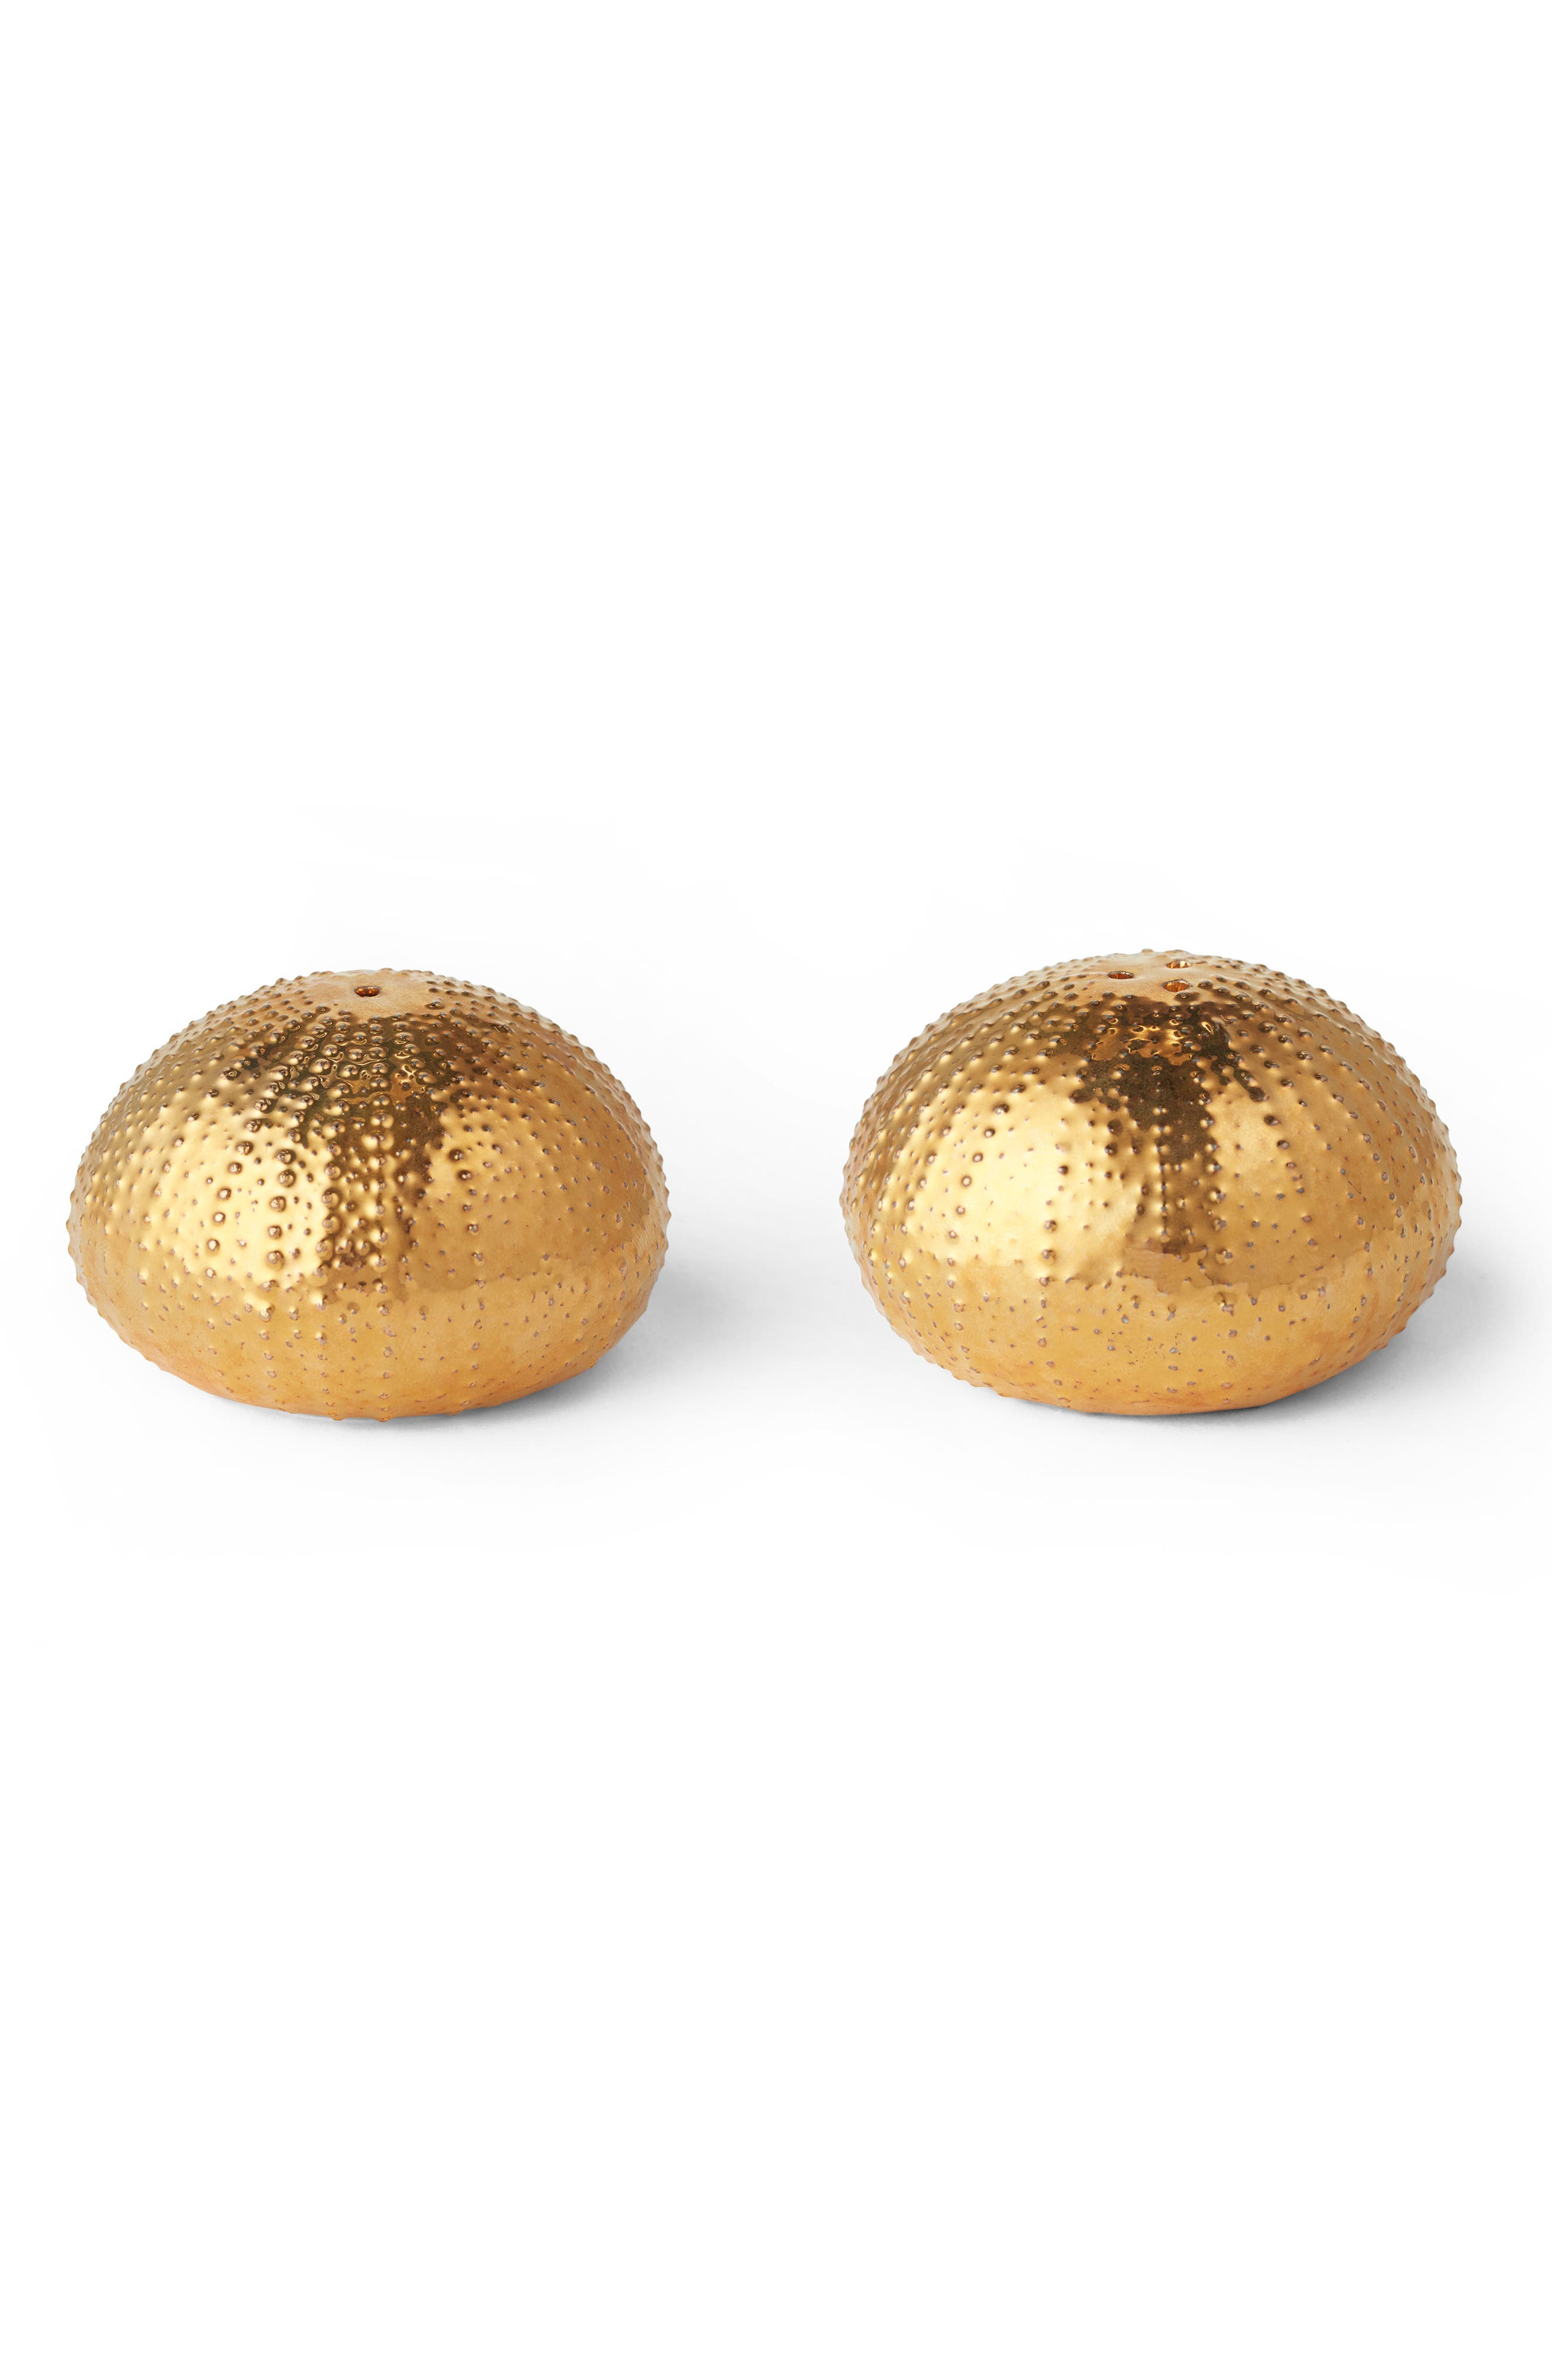 Sea Urchin Salt & Pepper Shakers,                             Main thumbnail 1, color,                             GOLD